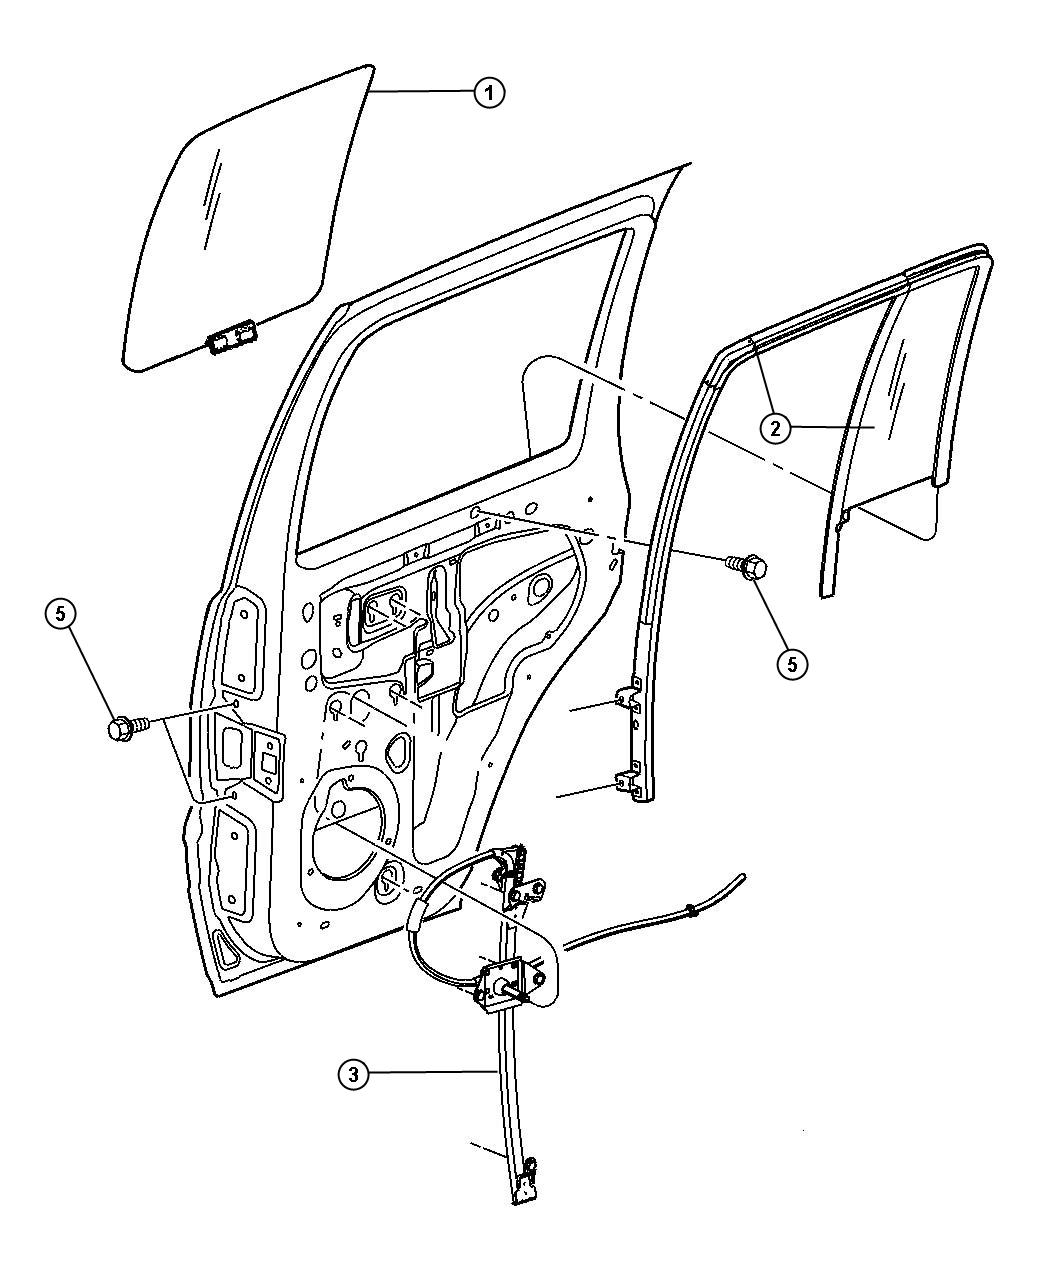 2004 Jeep Wrangler Parts Diagram